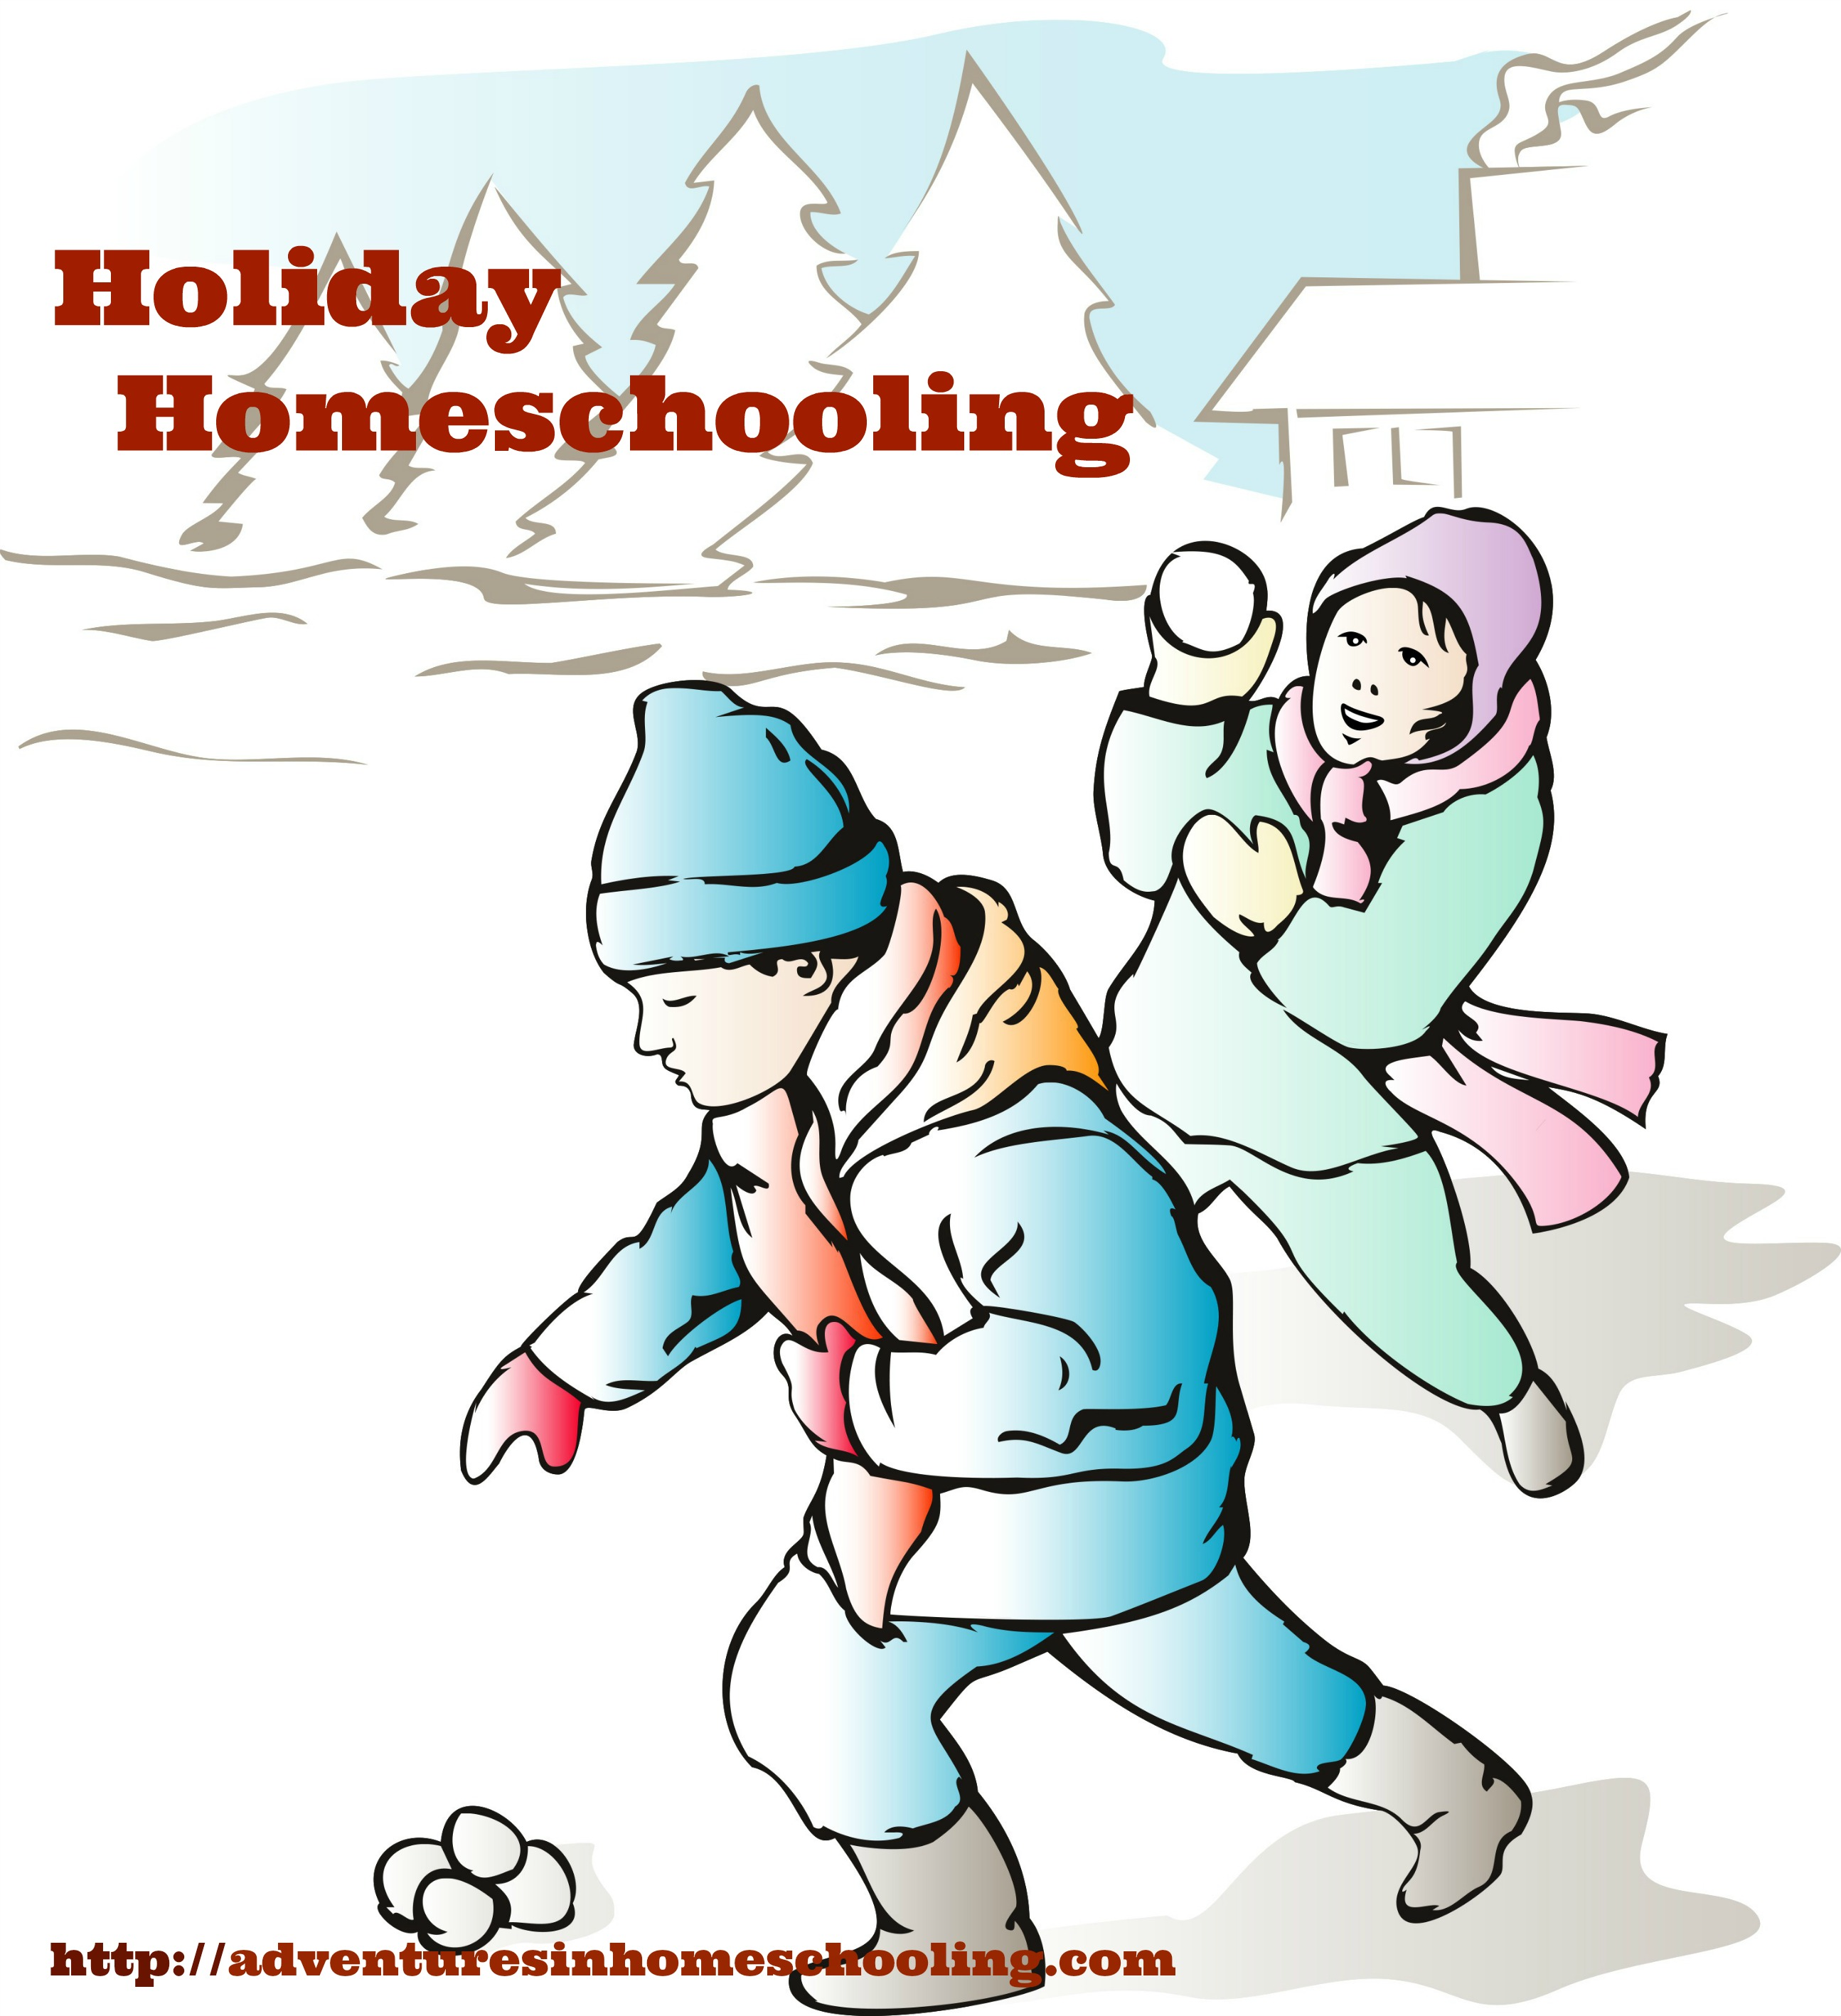 Holiday Homeschooling